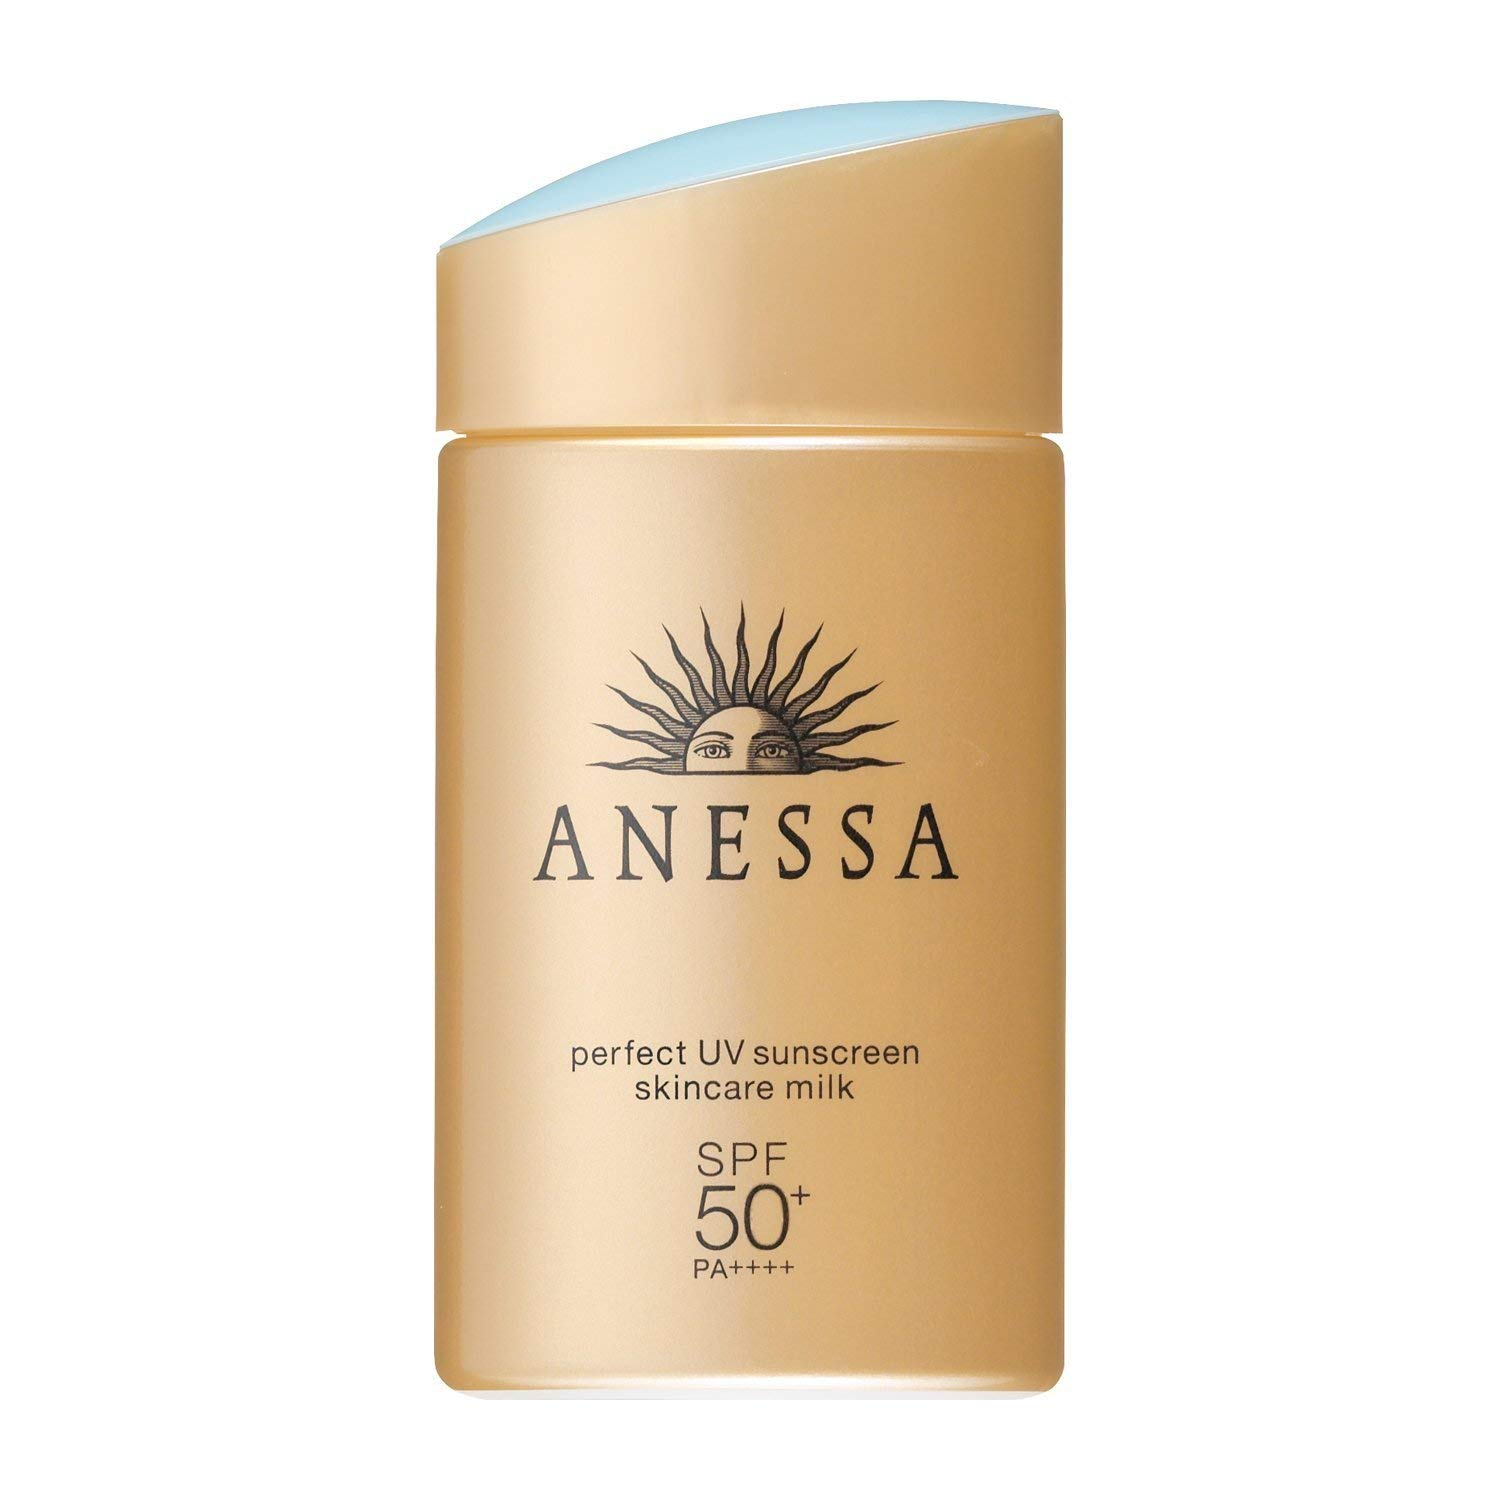 Anessa Perfect UV Sunscreen Skin Care Milk SPF50+/PA++++ | 8 Best Sunscreens for Singapore's Hot and Humid Weather